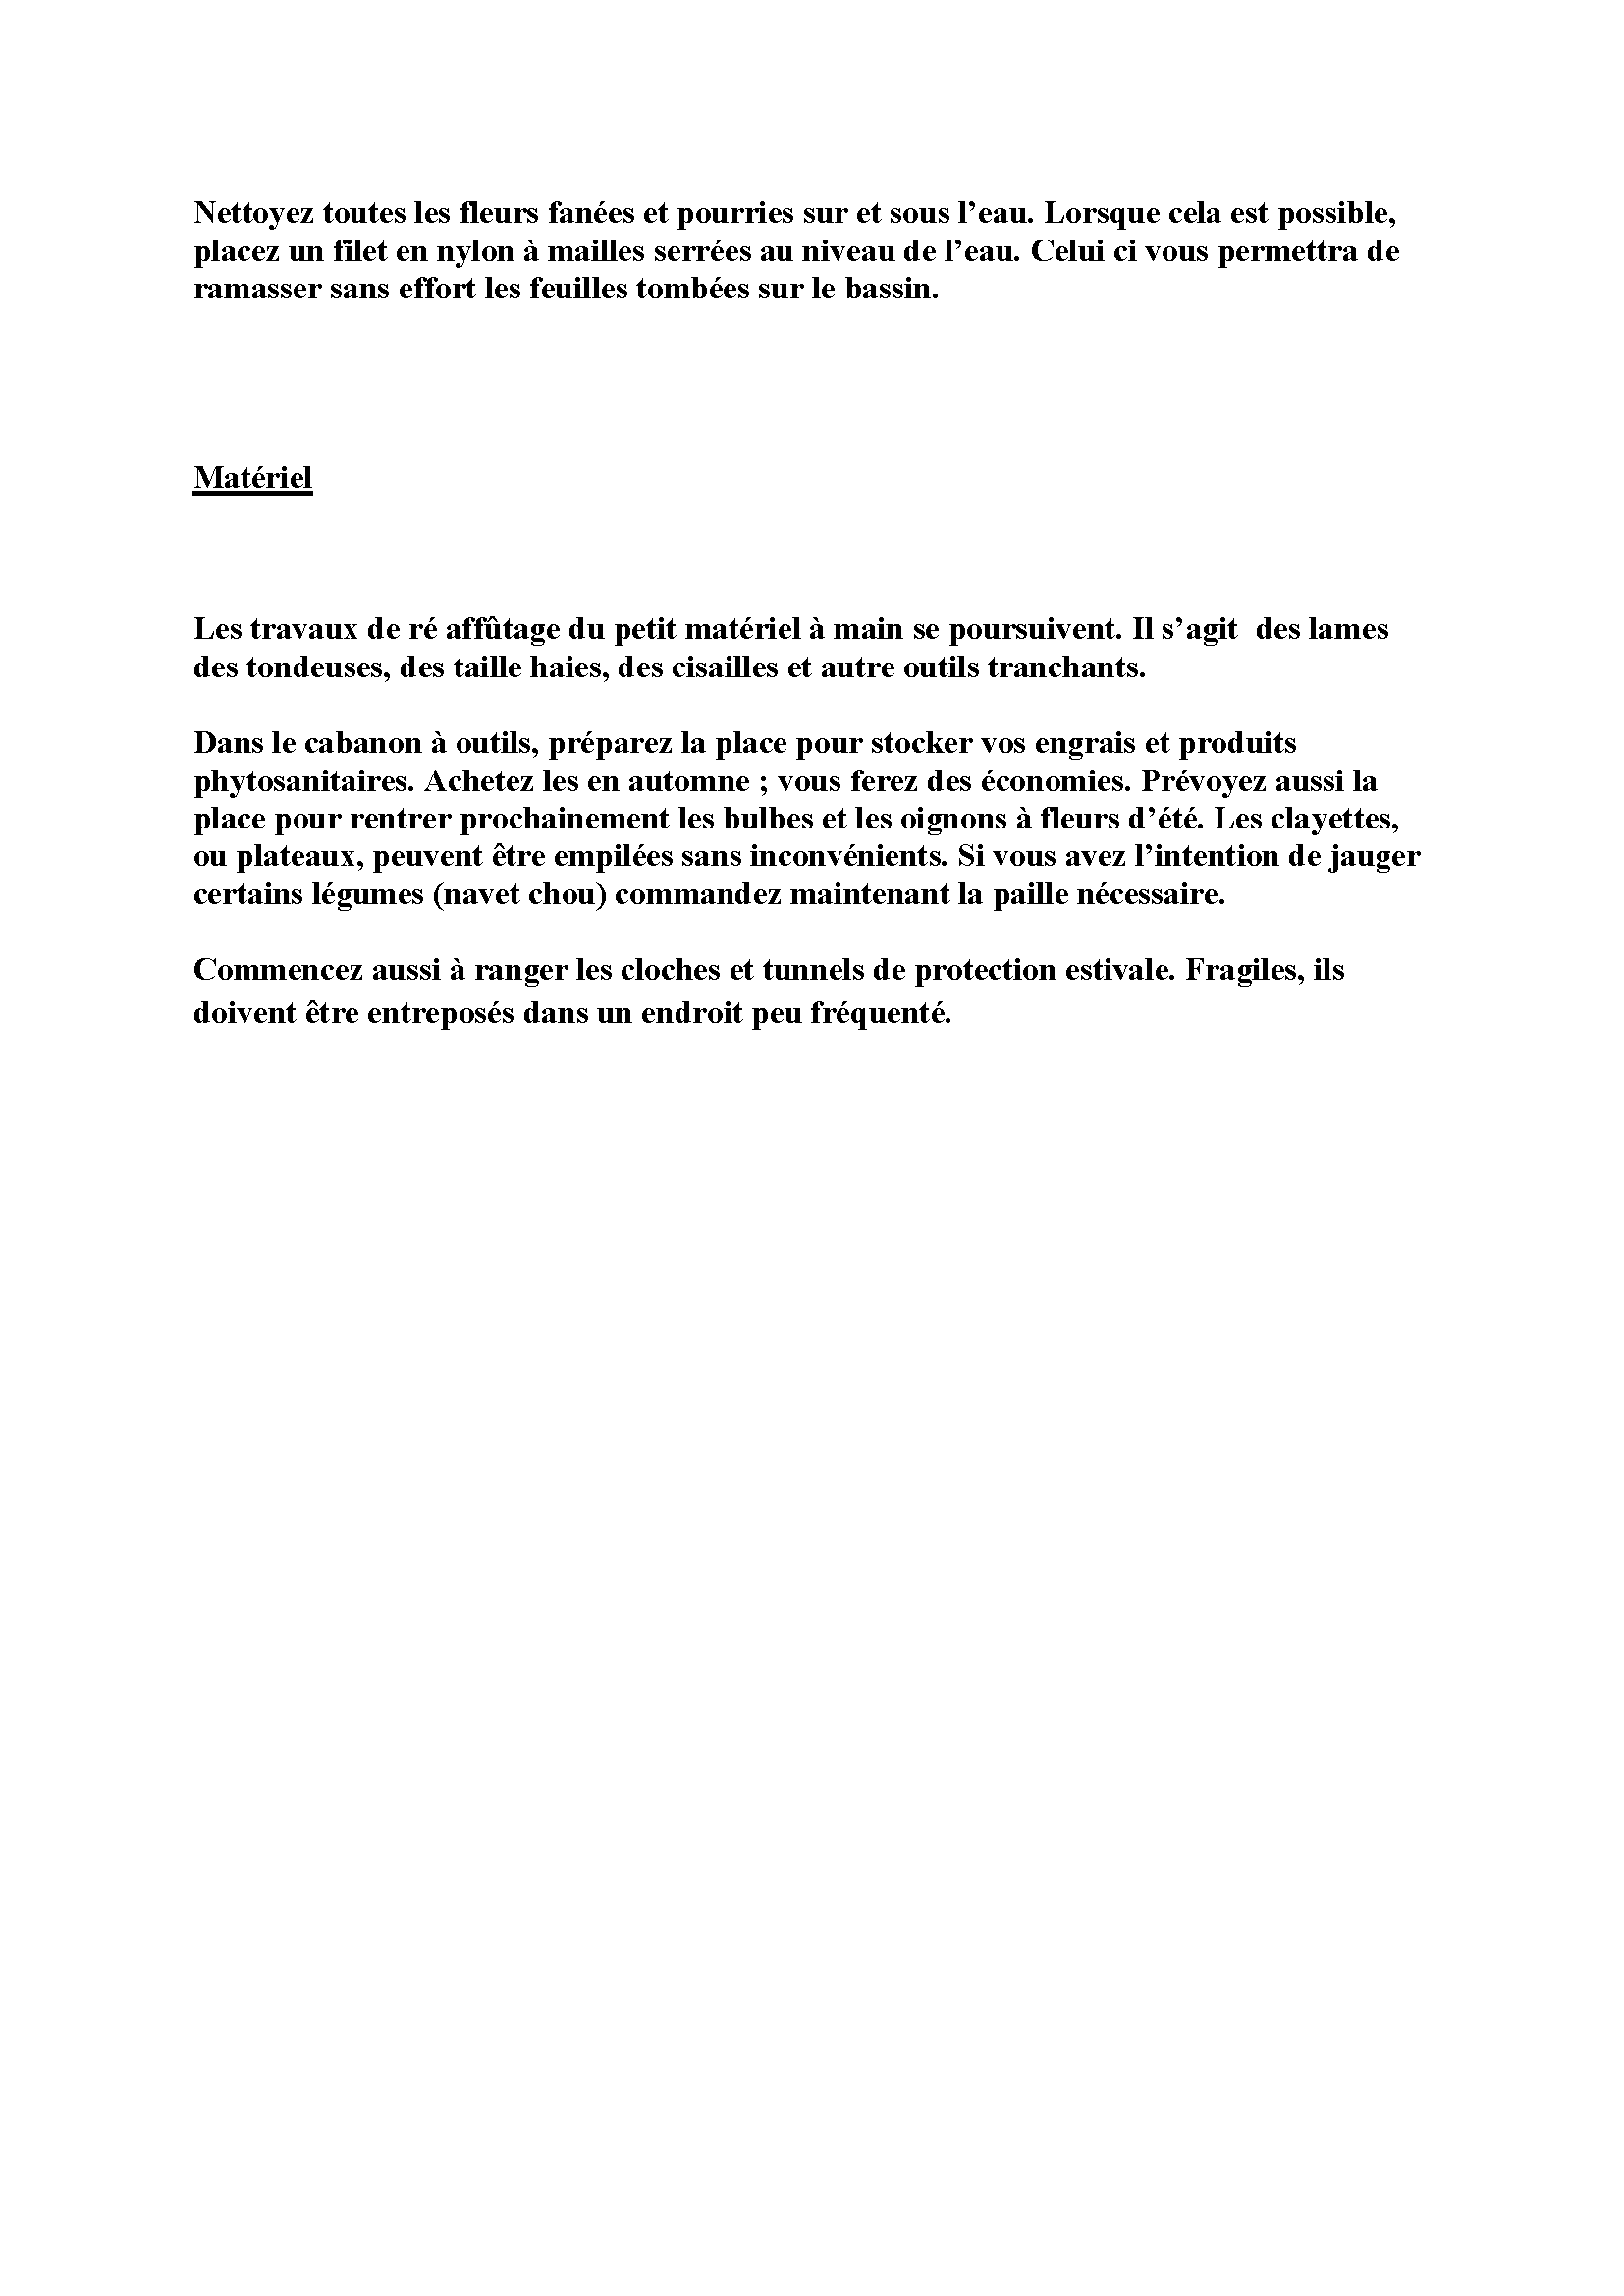 http://palife.free.fr/up/Travaux%20de%20septembre_Page_10.png